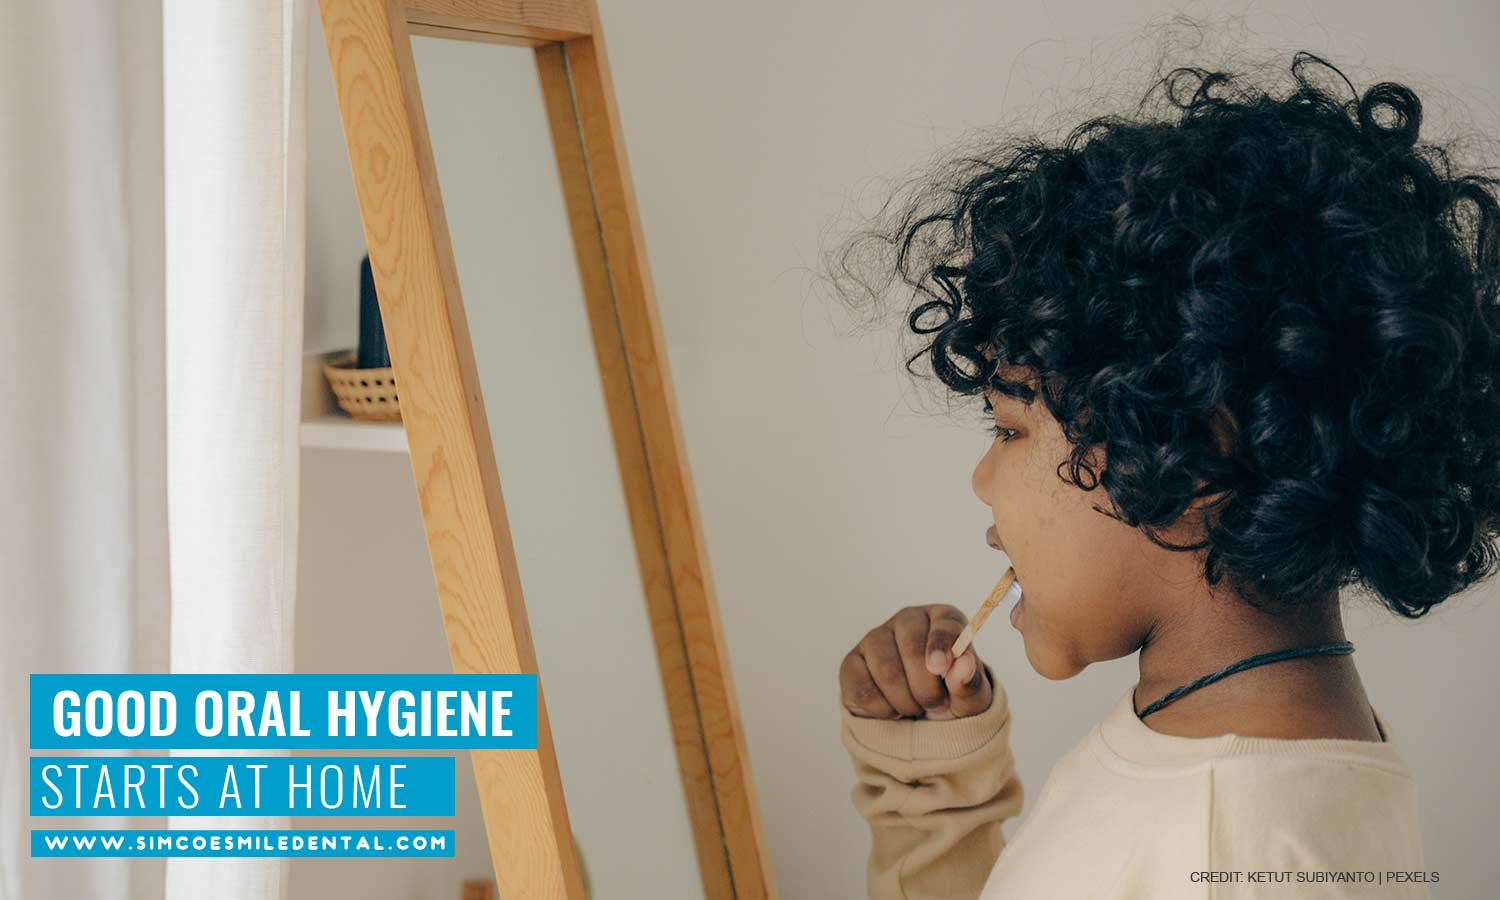 Good-oral-hygiene-starts-at-home How to Get Your Kid Excited for a Dental Visit